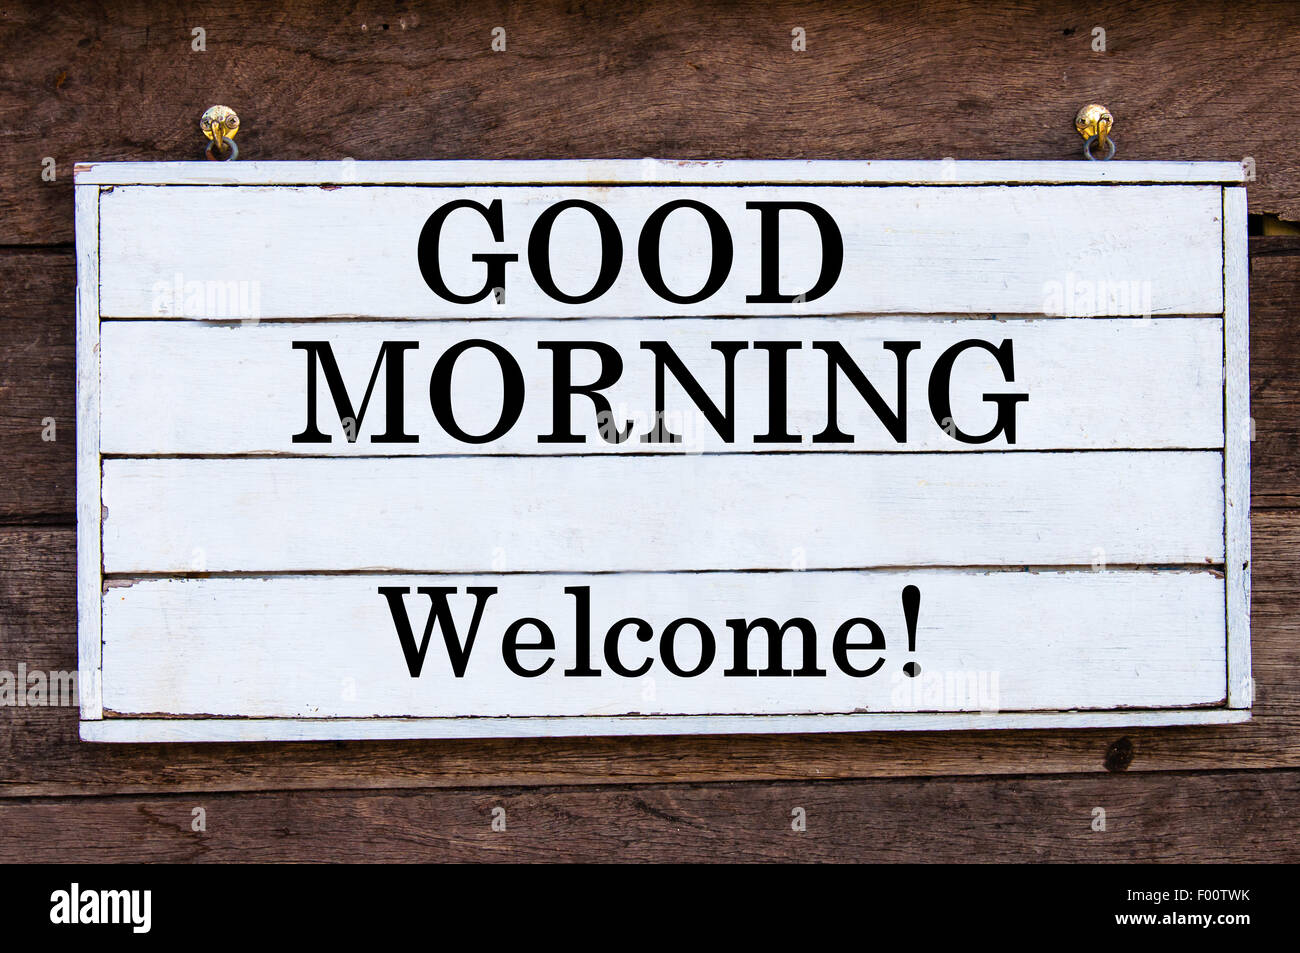 Good Morning Vintage Photos : Good morning welcome inspirational message written on